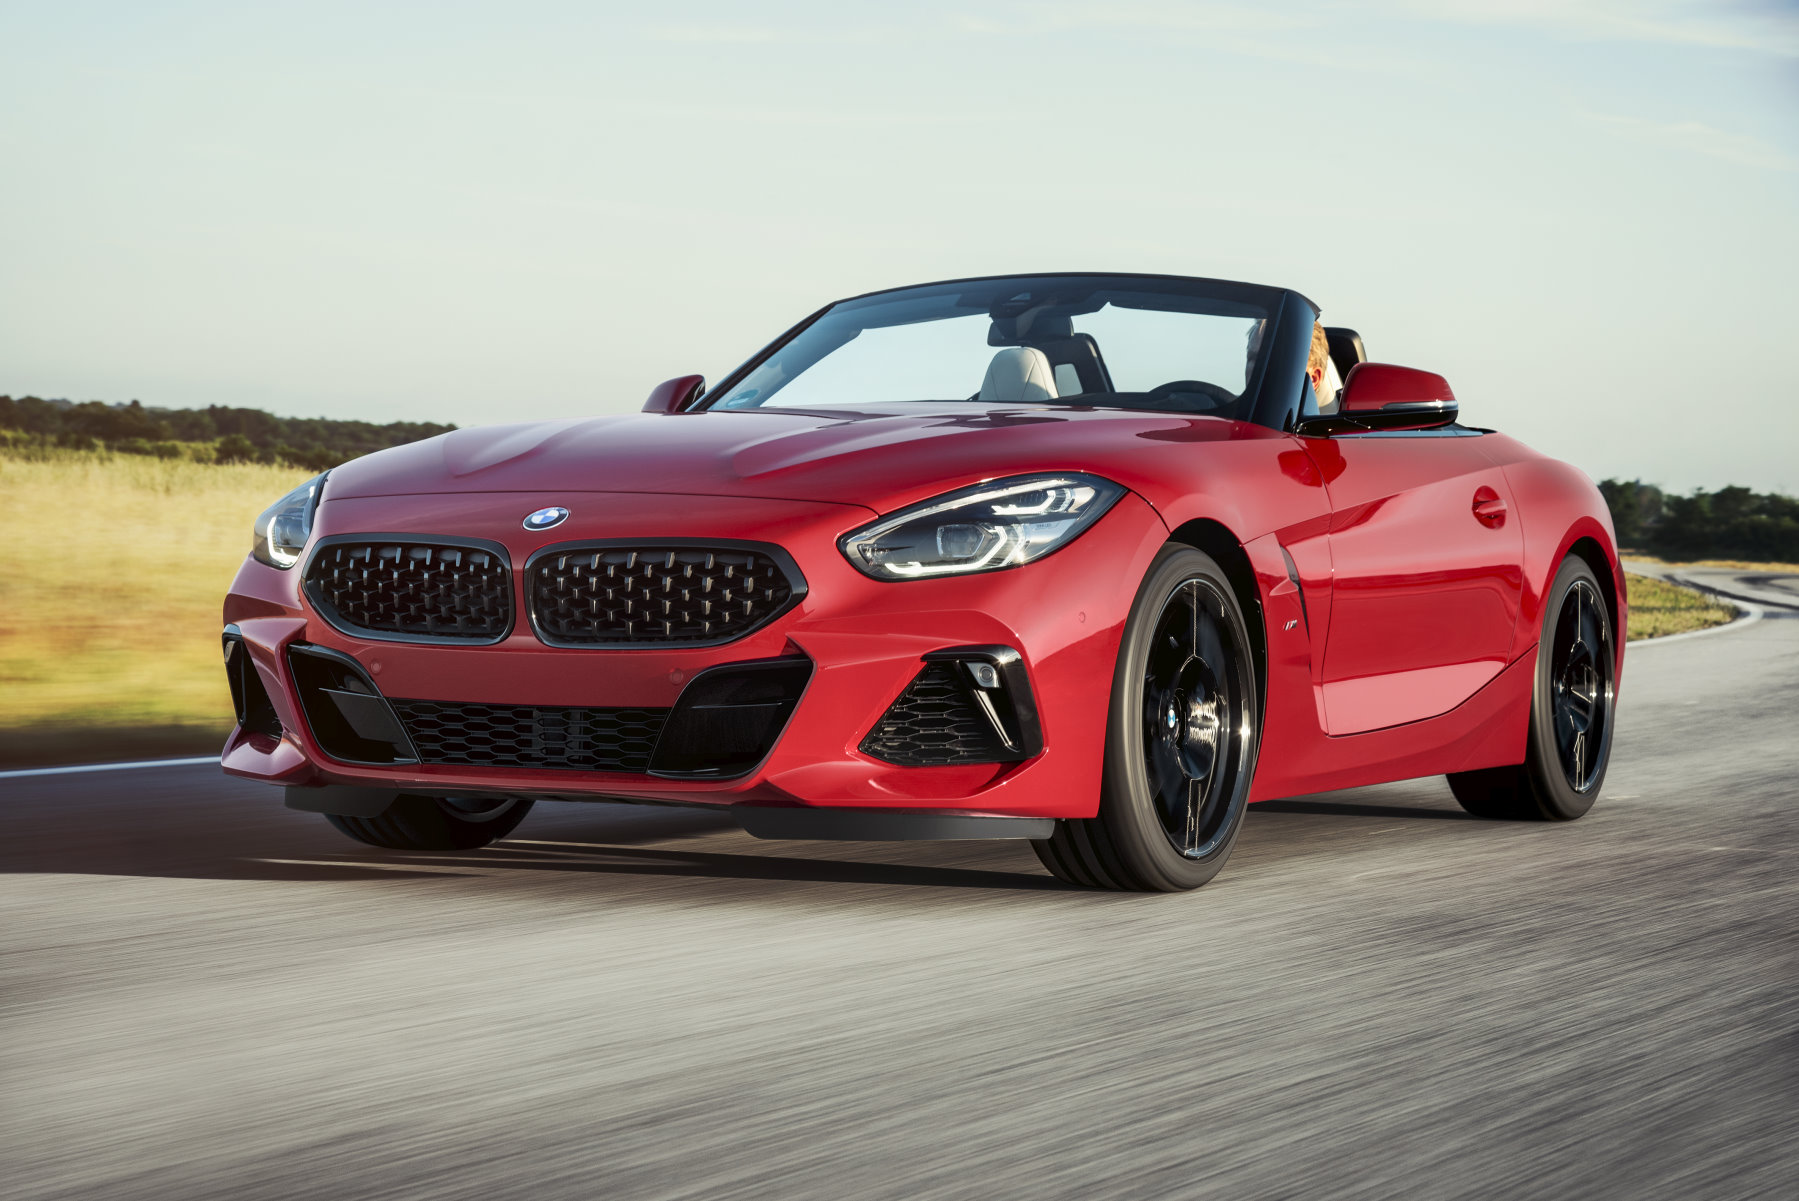 2020 BMW Z4 Roadster Spesification